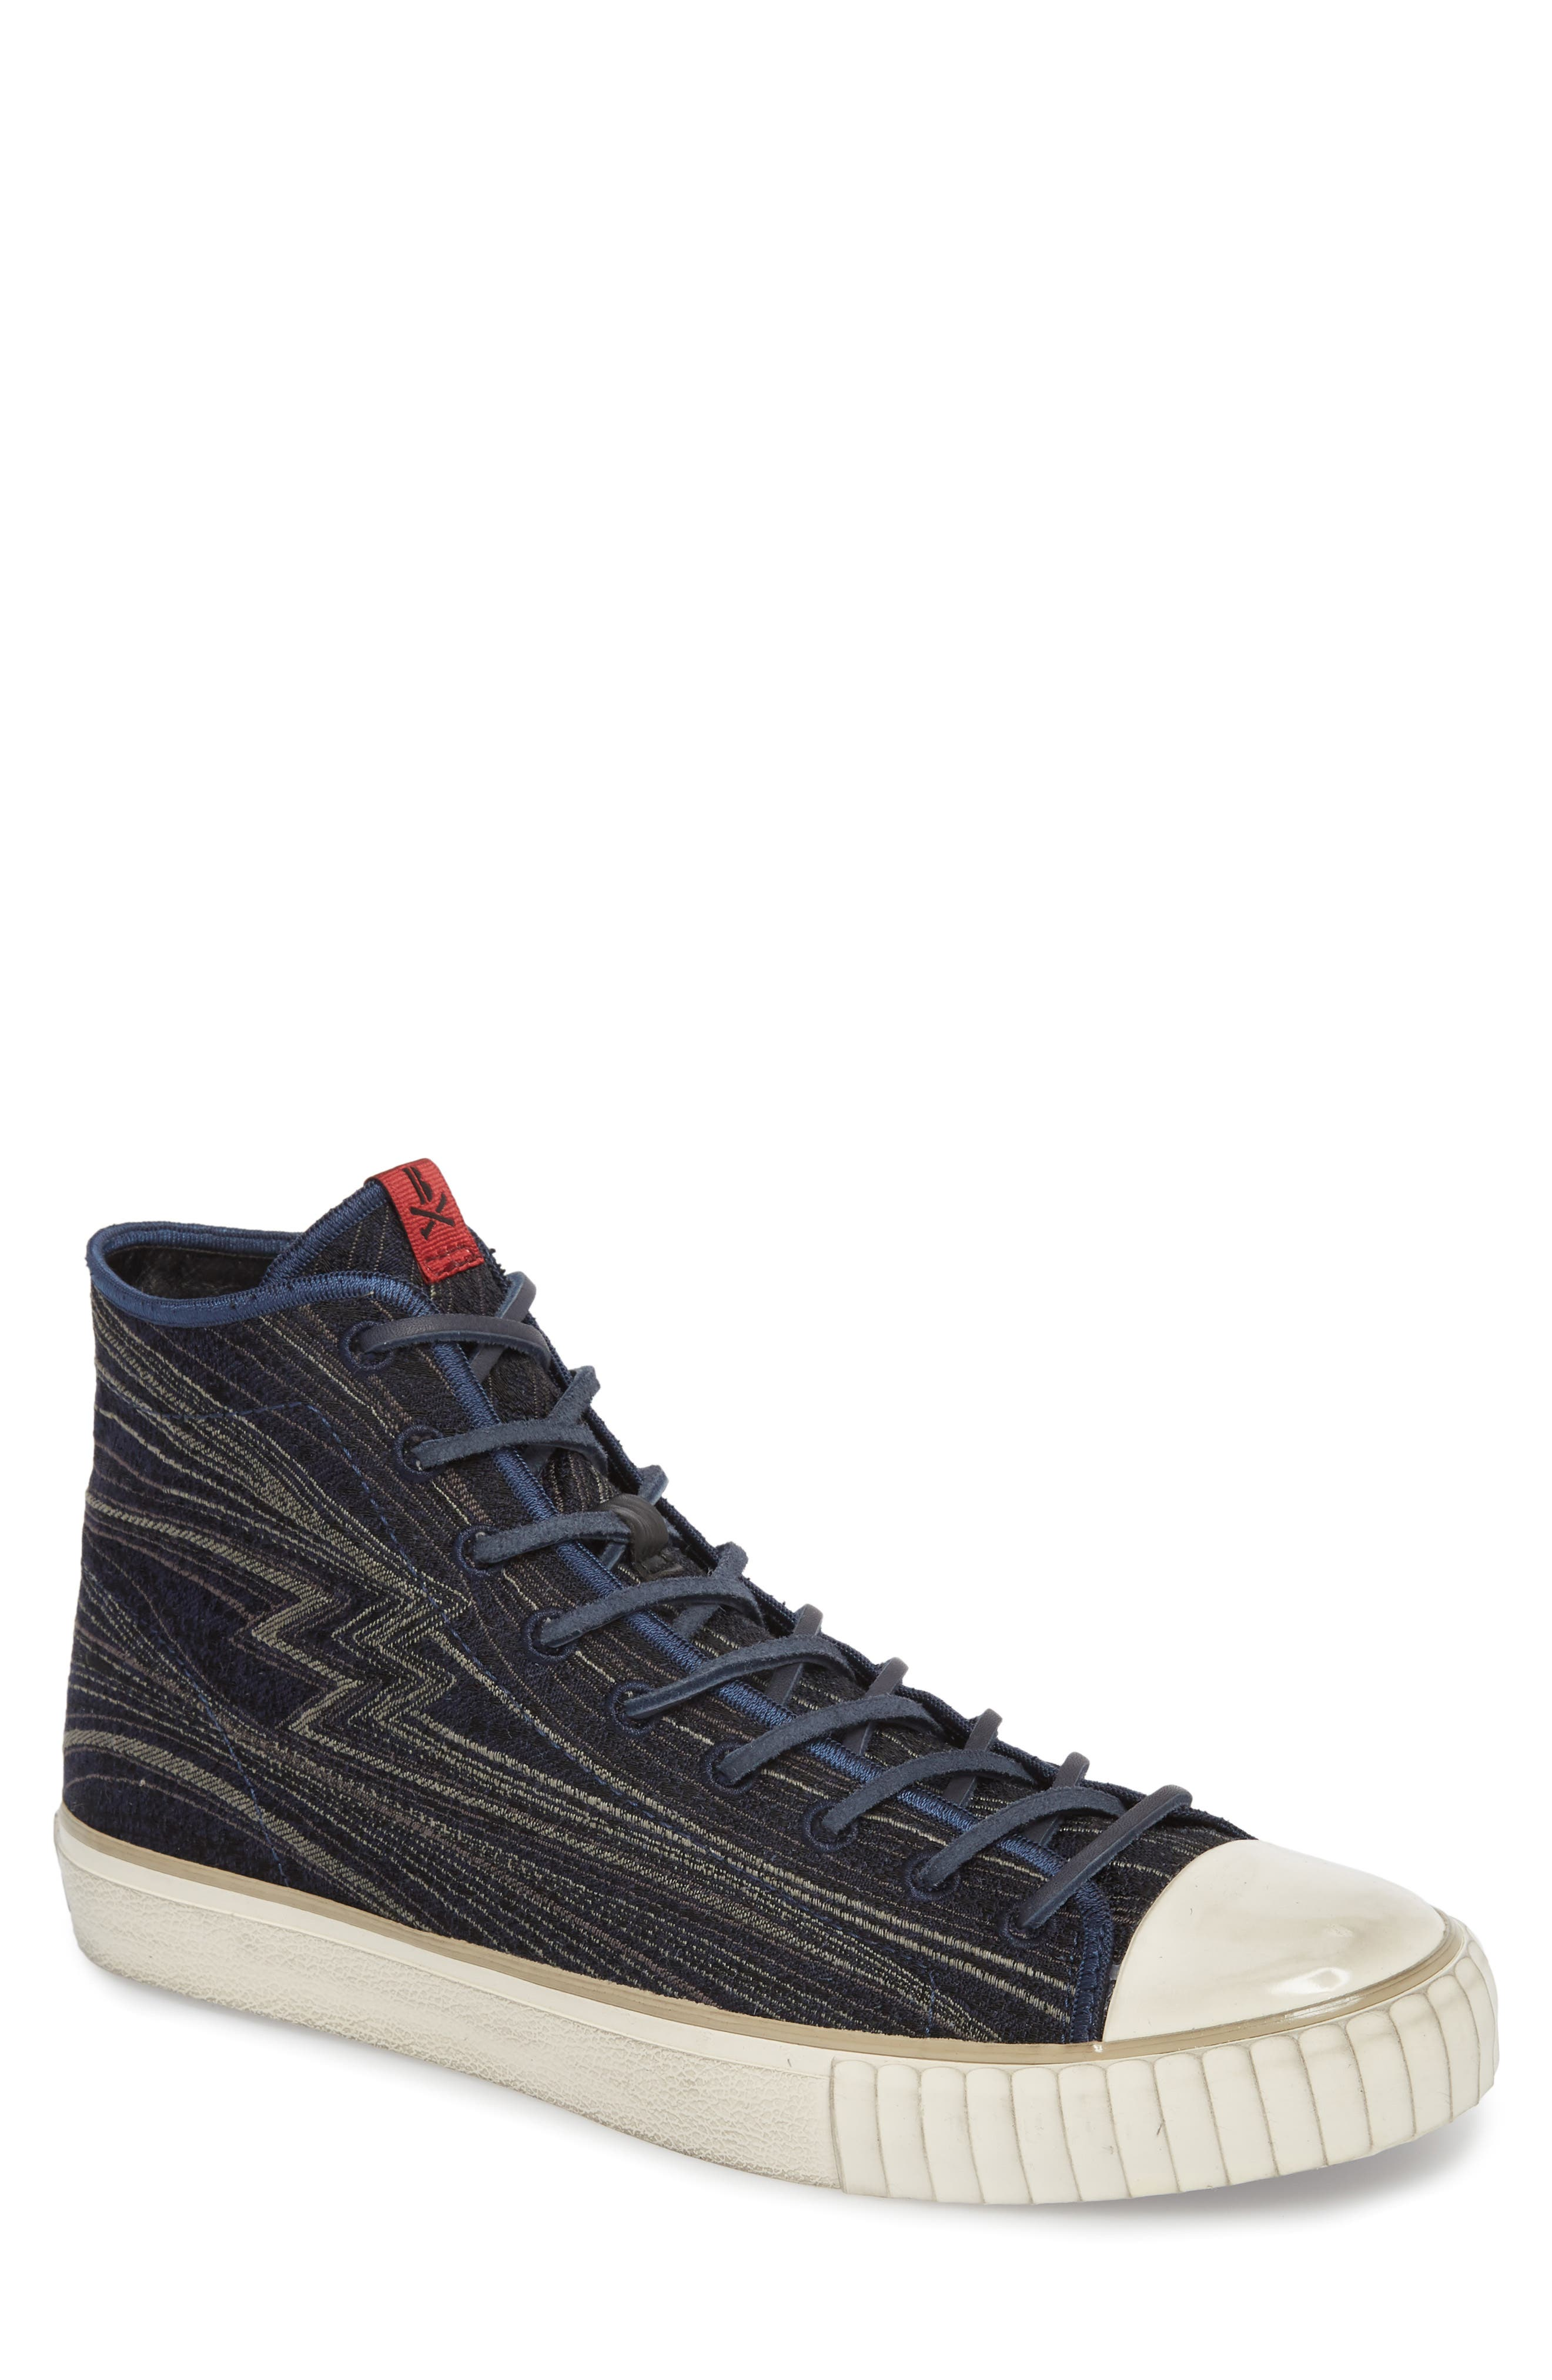 Mid Top Engineered Sneaker,                             Main thumbnail 1, color,                             Midnight Fabric